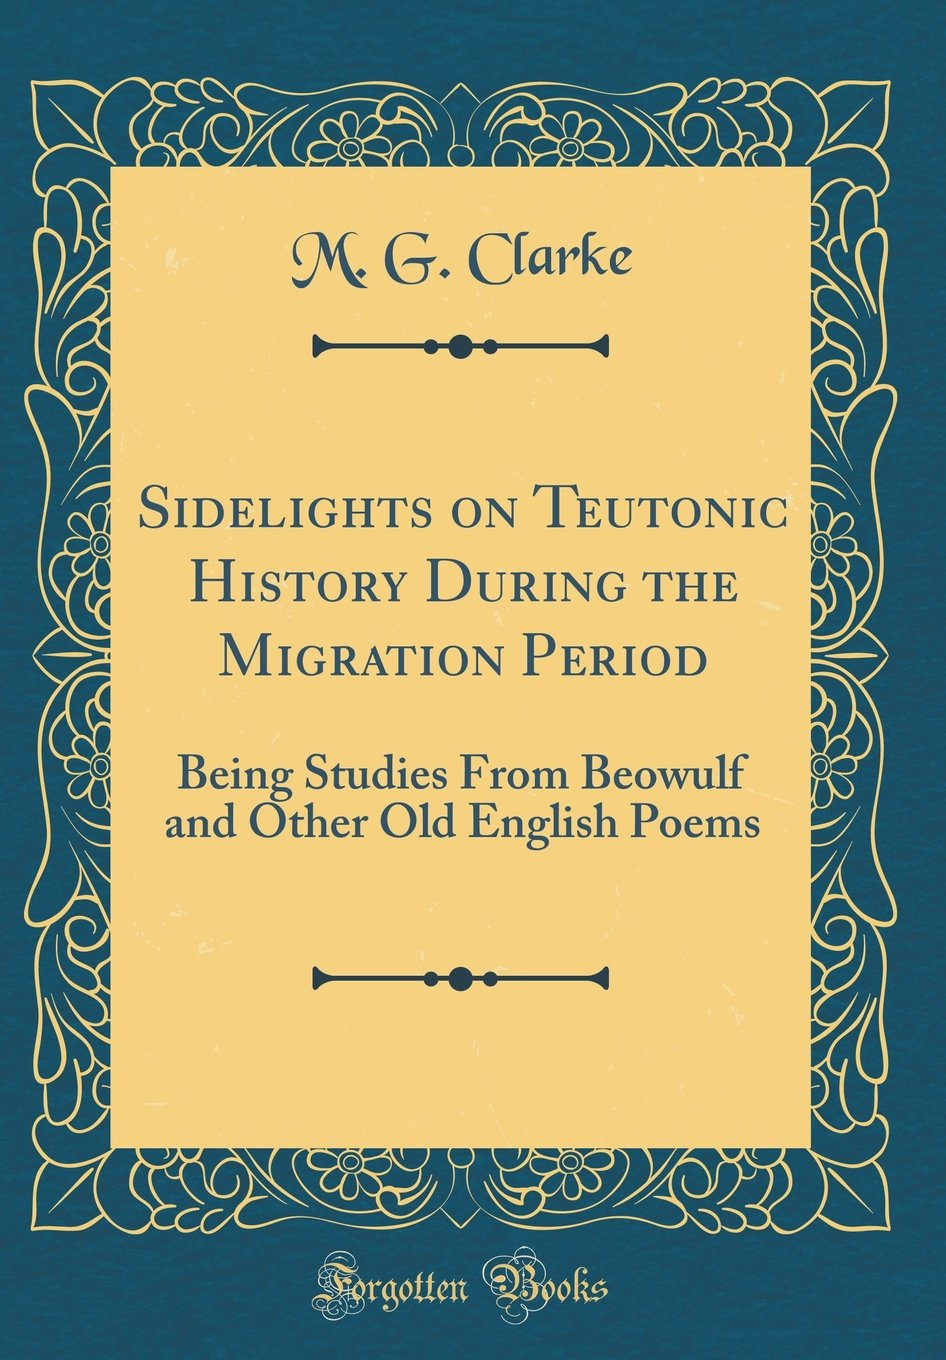 sidelights on teutonic history during the migration period being  sidelights on teutonic history during the migration period being studies  from beowulf and other old english poems classic reprint hardcover   april   healthy eating habits essay also essay health care healthy eating essays